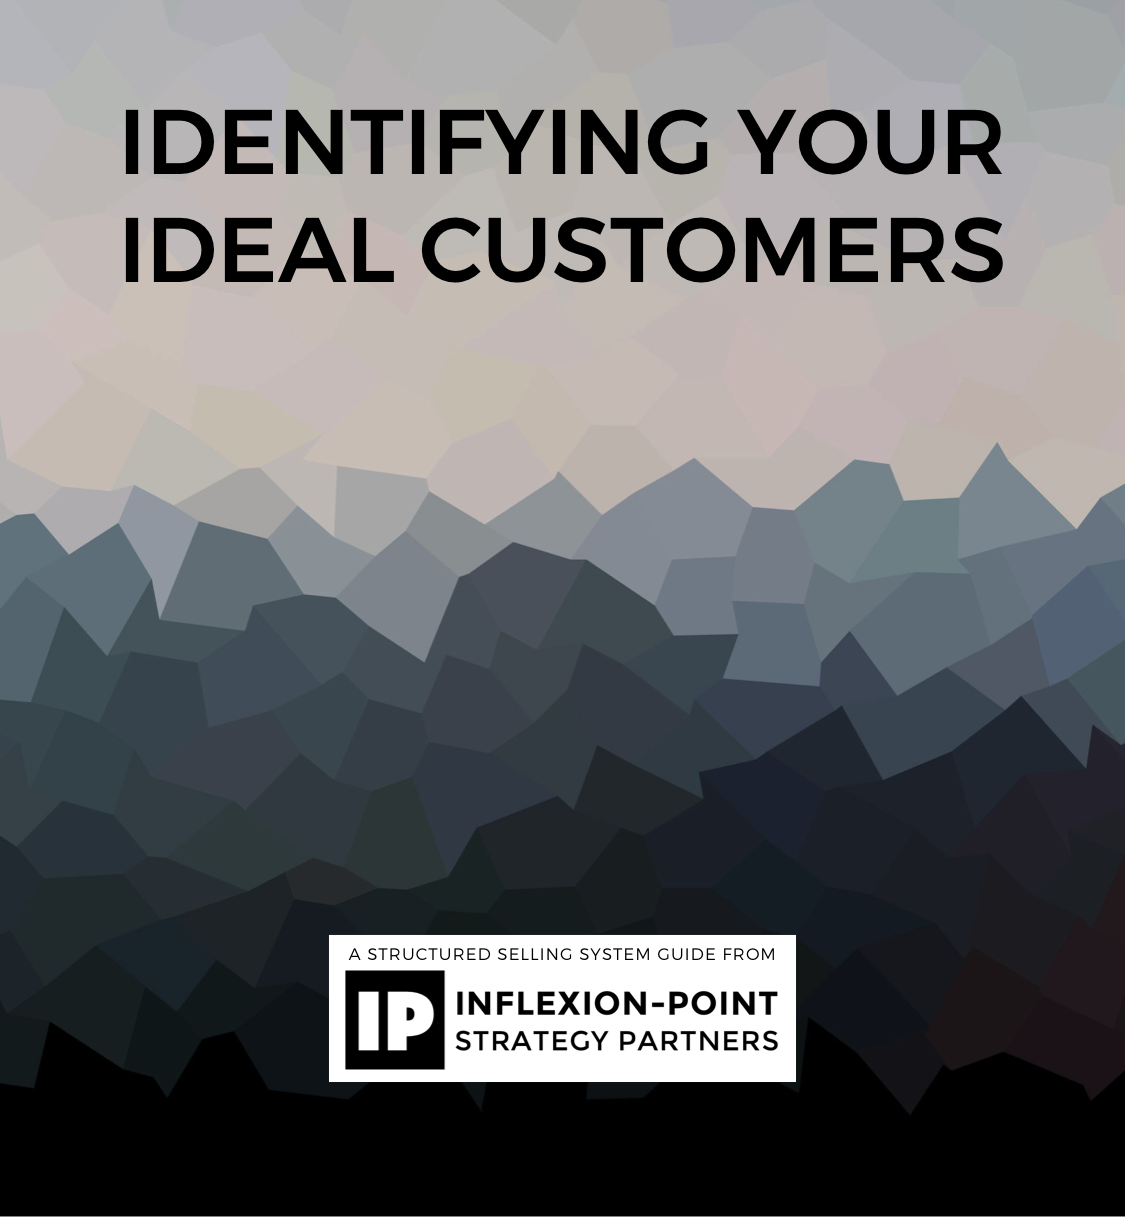 Ideal Customer Guide Cover Cut Down.png